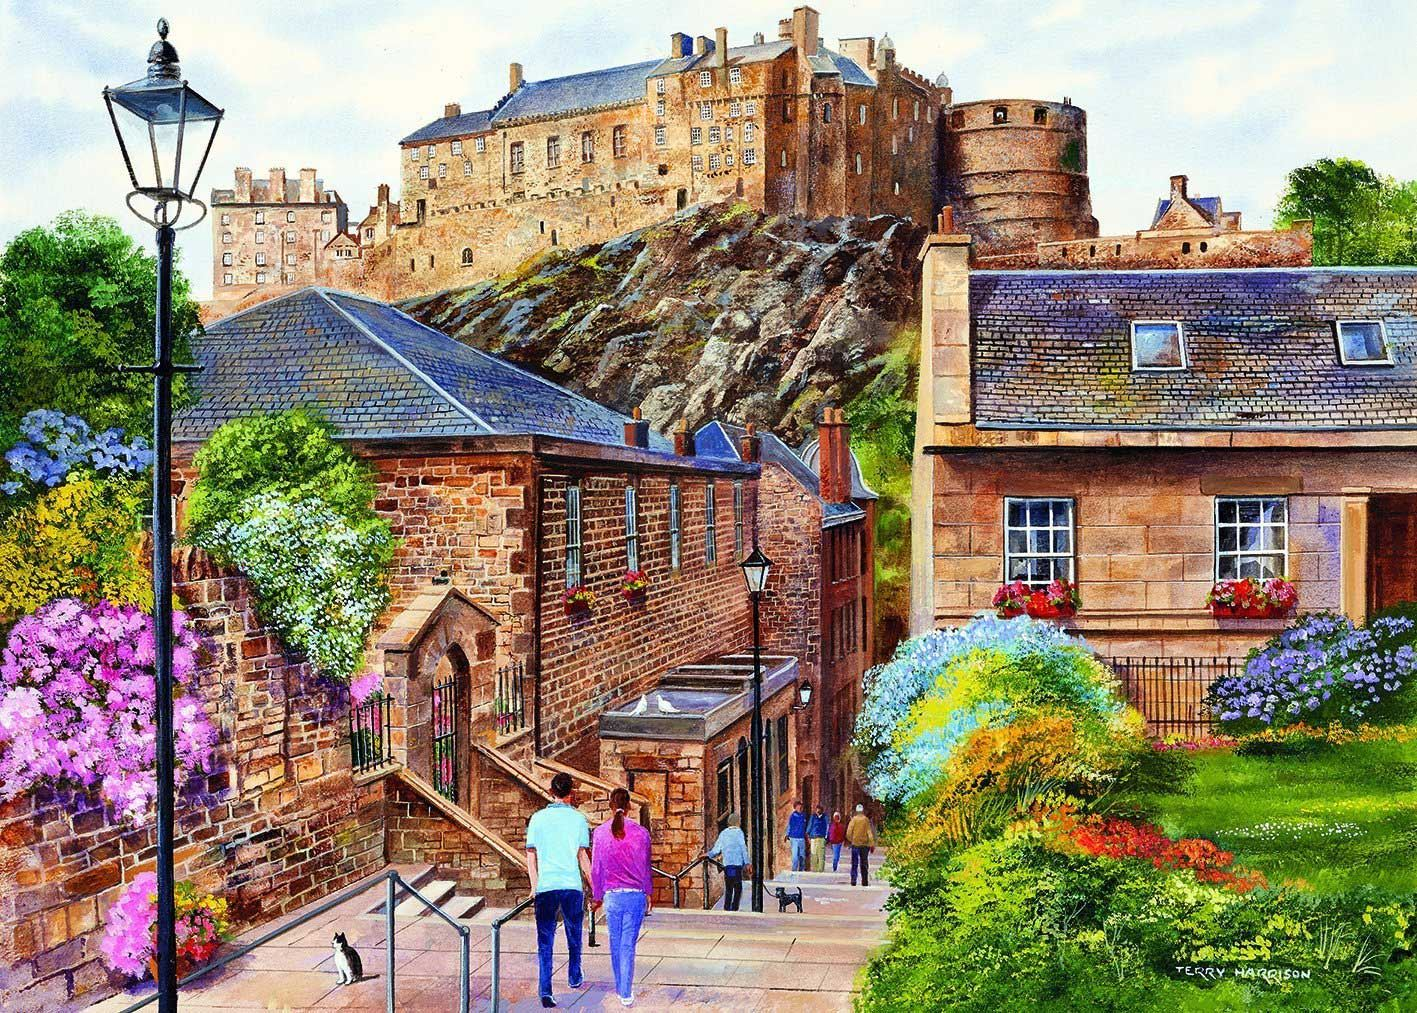 Gibsons Edinburgh - The Vennel Jigsaw Puzzle (1000 Pieces)